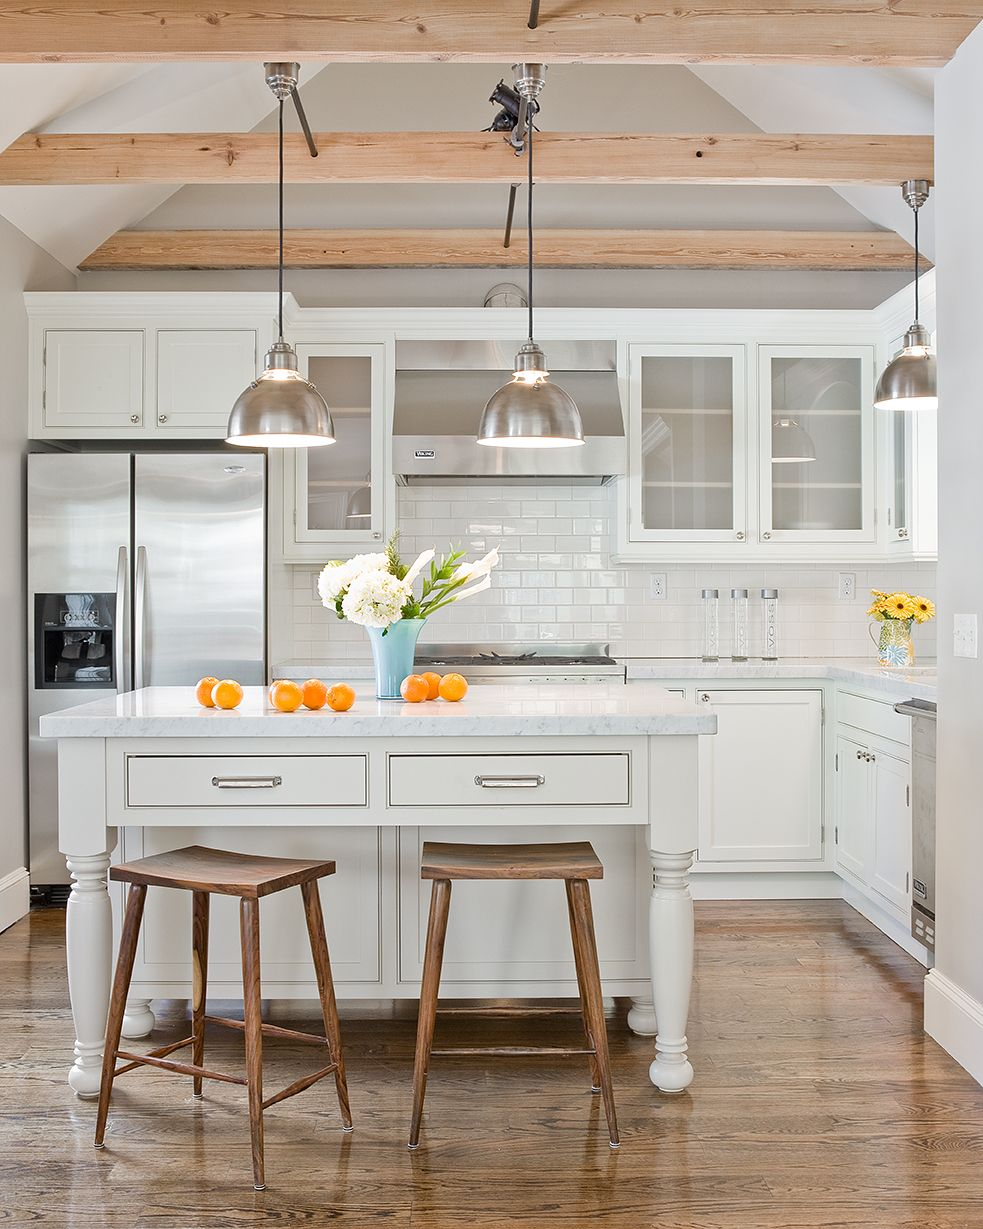 Modern kitchen design with gray walls paint color cathedral ceiling